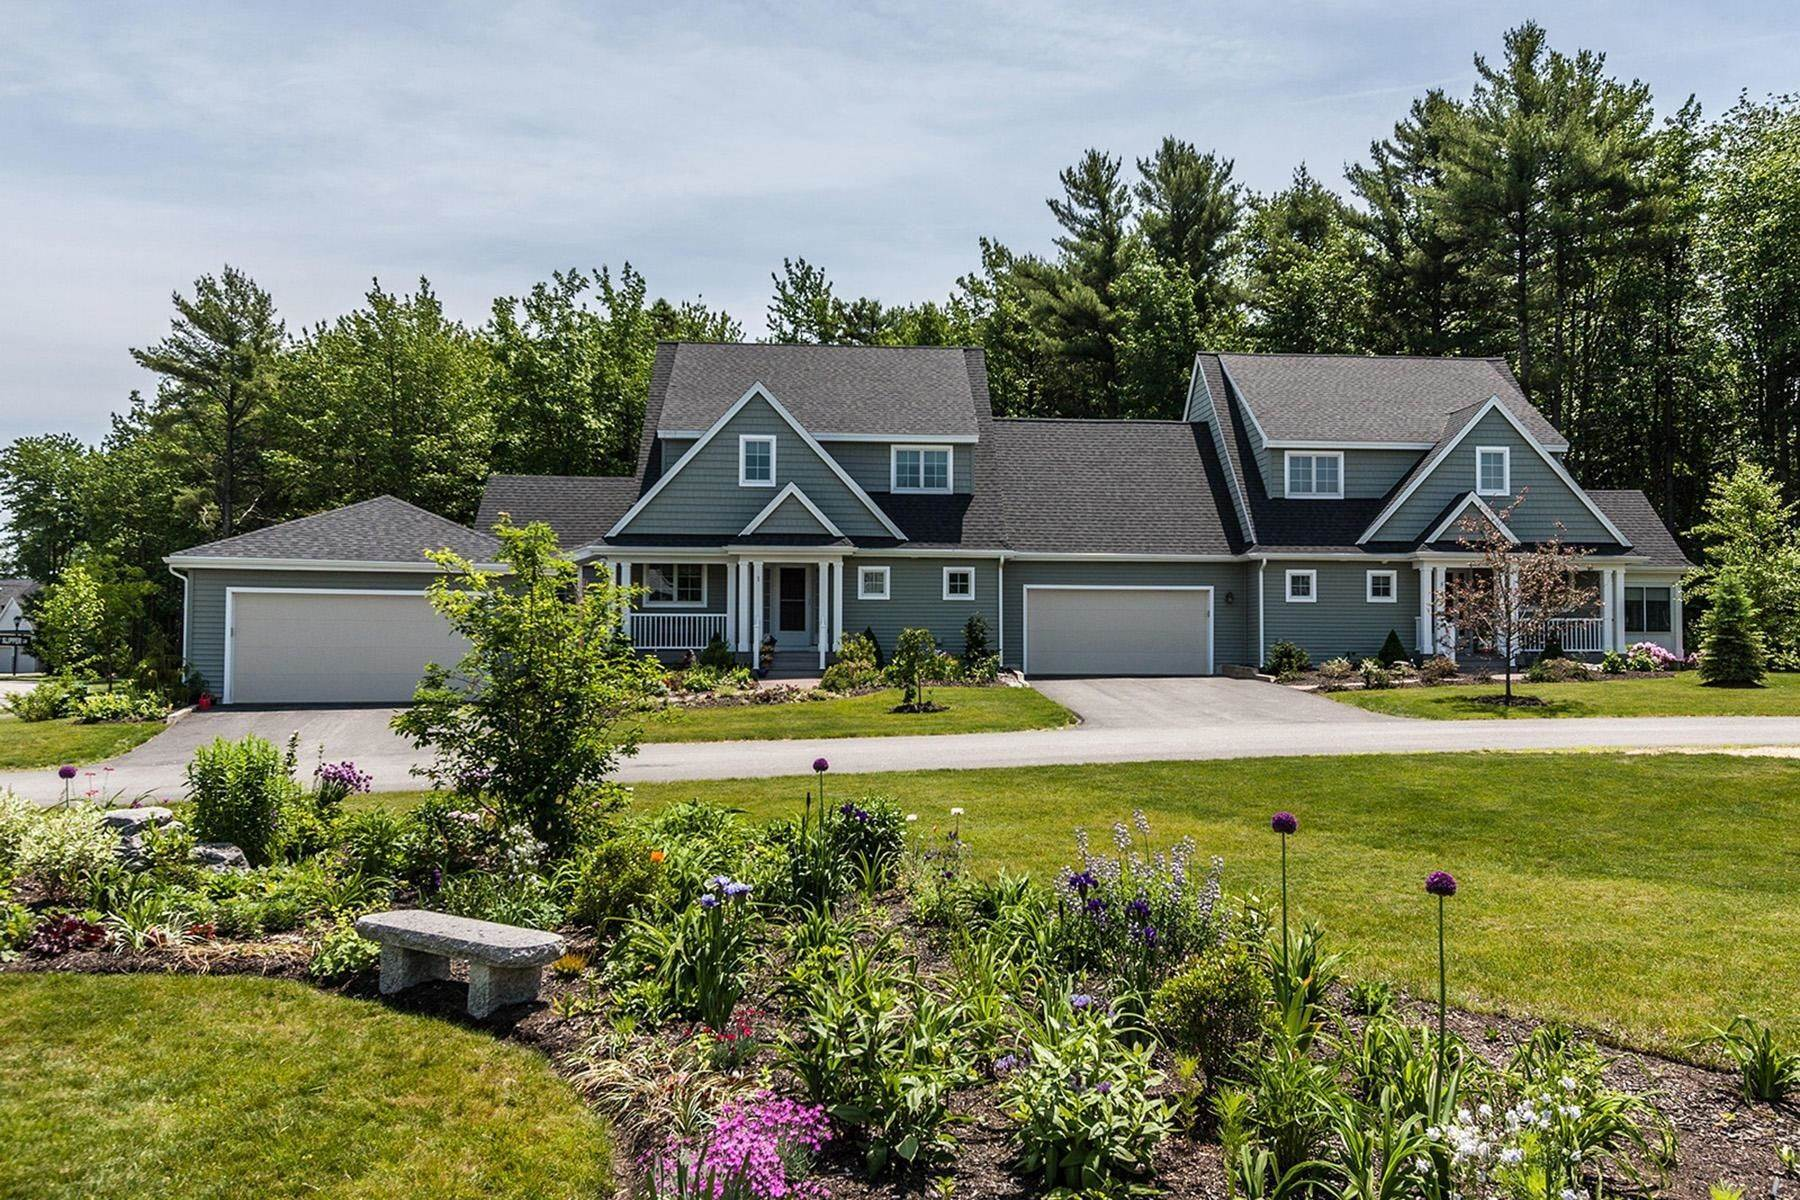 Condominiums for Sale at 2 Bog Rosemary Way, 76 Brunswick, Maine 04011 United States